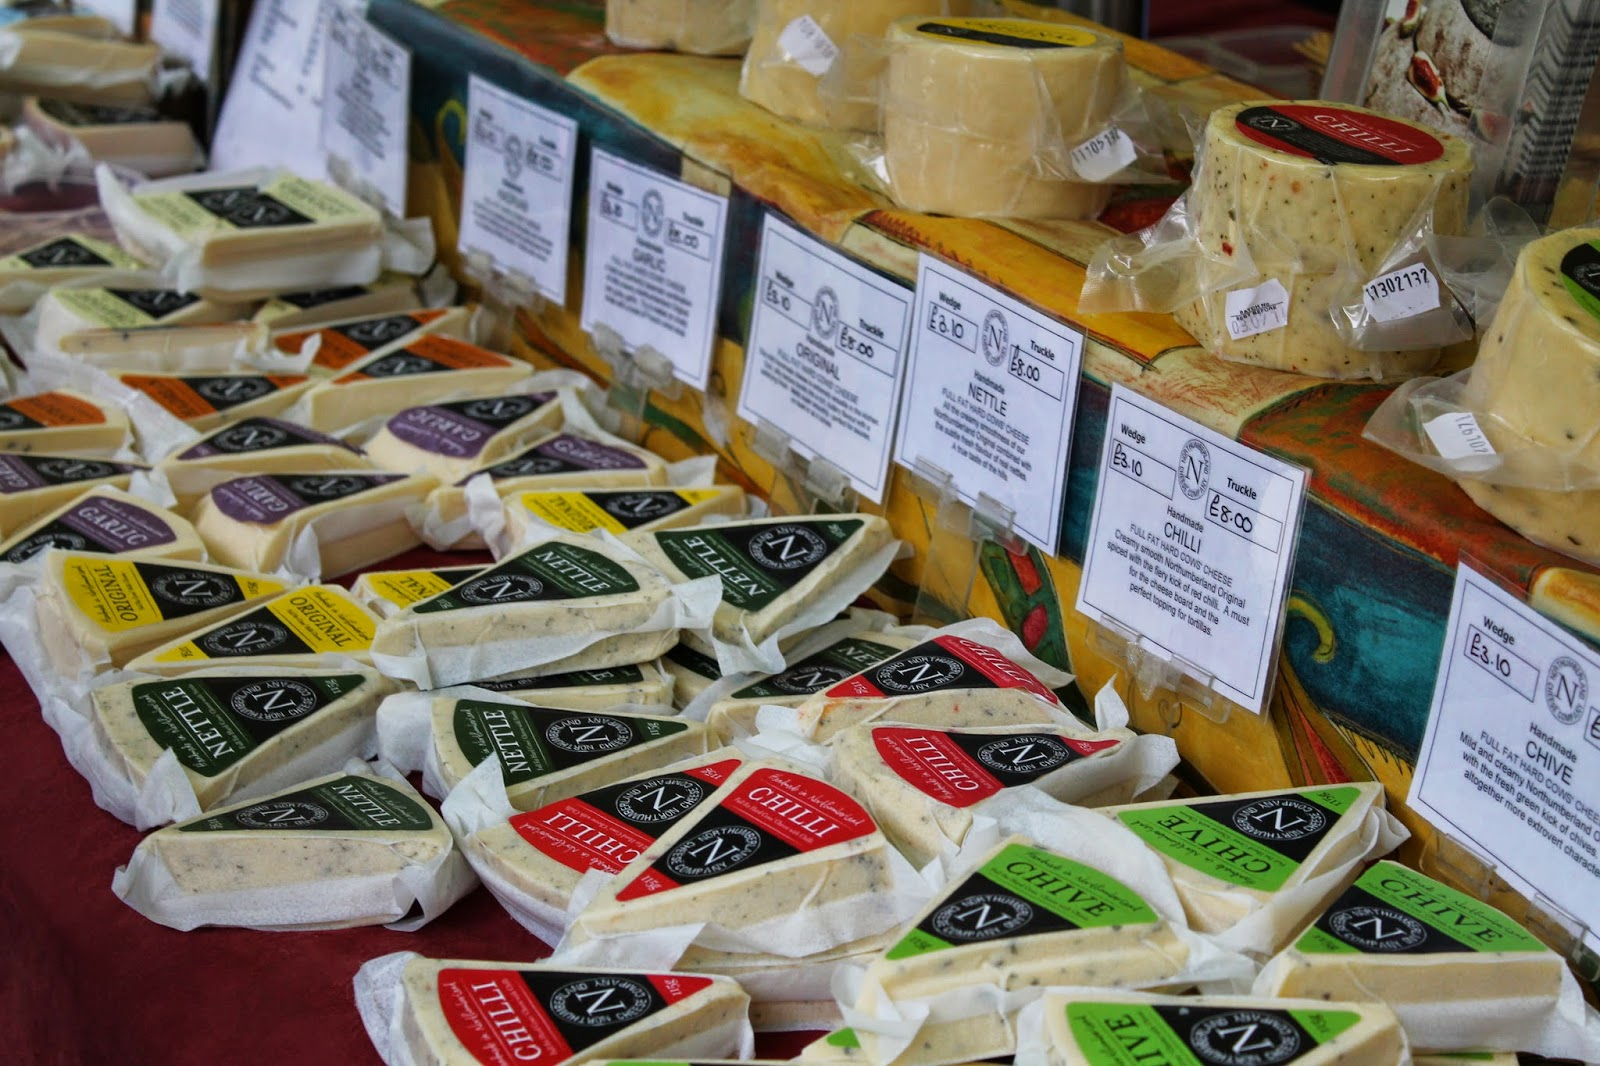 Bishop Auckland Food Festival 2014 - Cheese